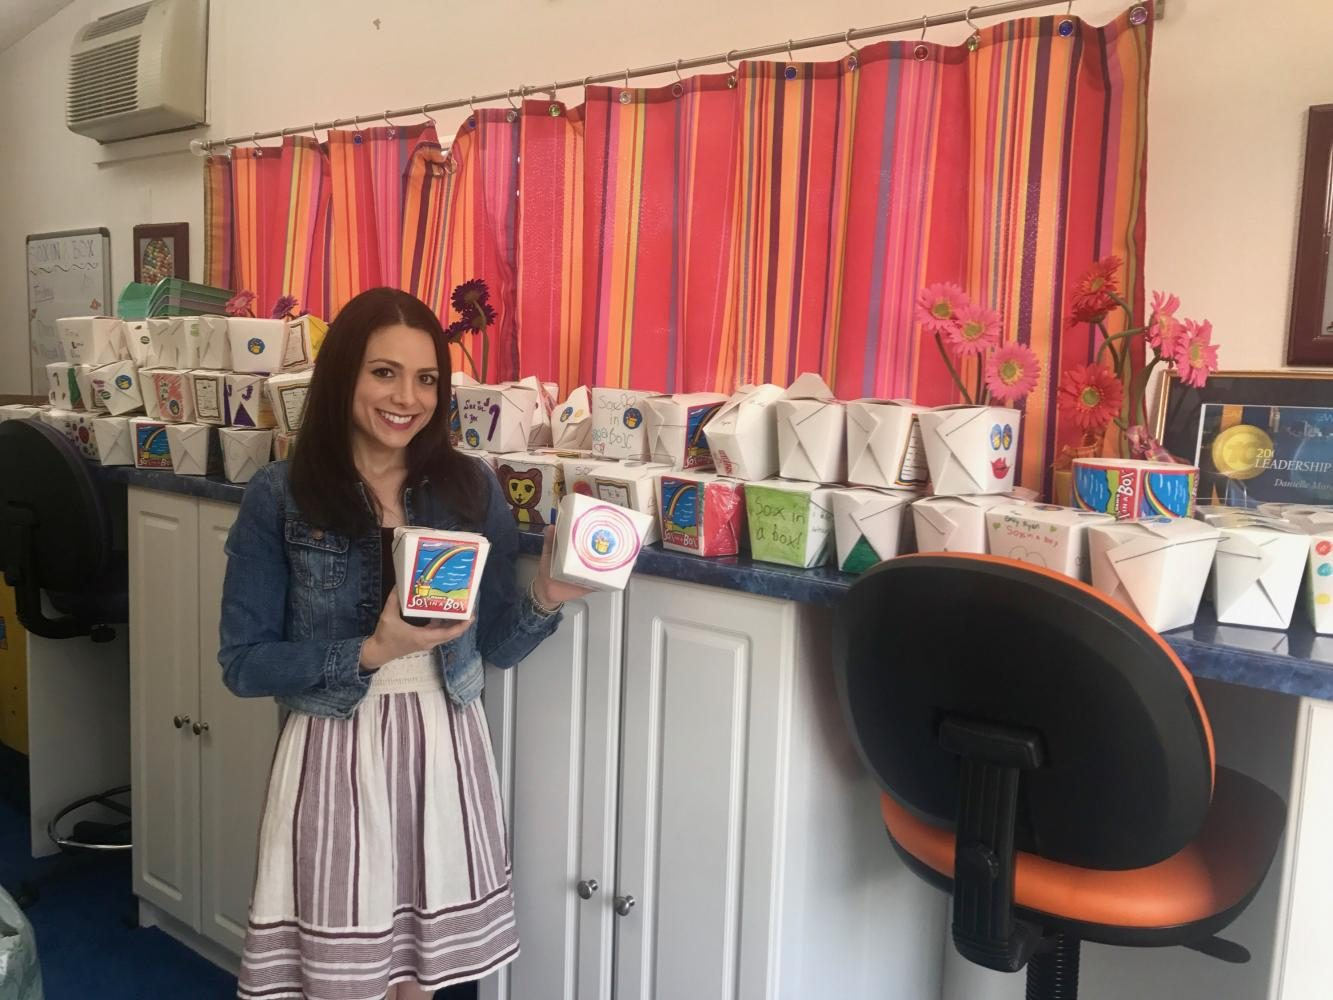 Nutritional science graduate student Danielle Marco runs a non-profit charity, Sox in a Box, which is accepting donations of new socks for hurricane victims.